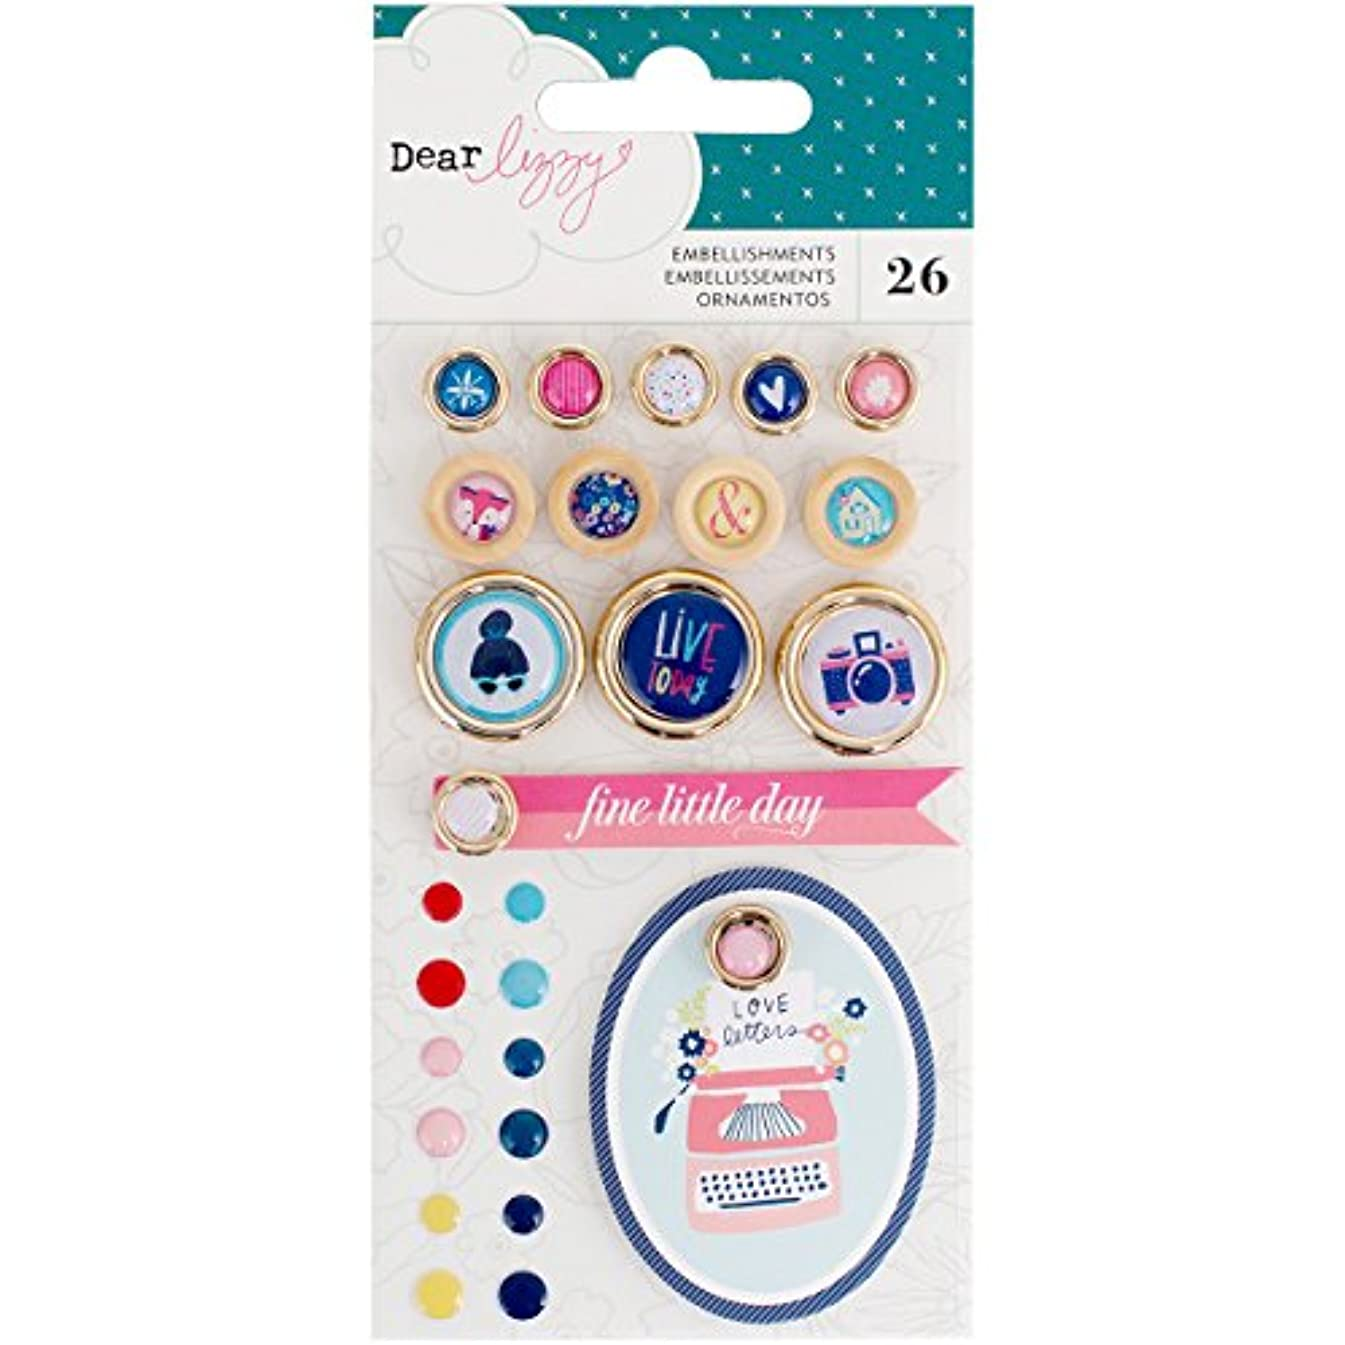 American Crafts Dear Lizzy Lovely Day Embellishment Pack 26 Piece Enamel Dots, Buttons, Tags